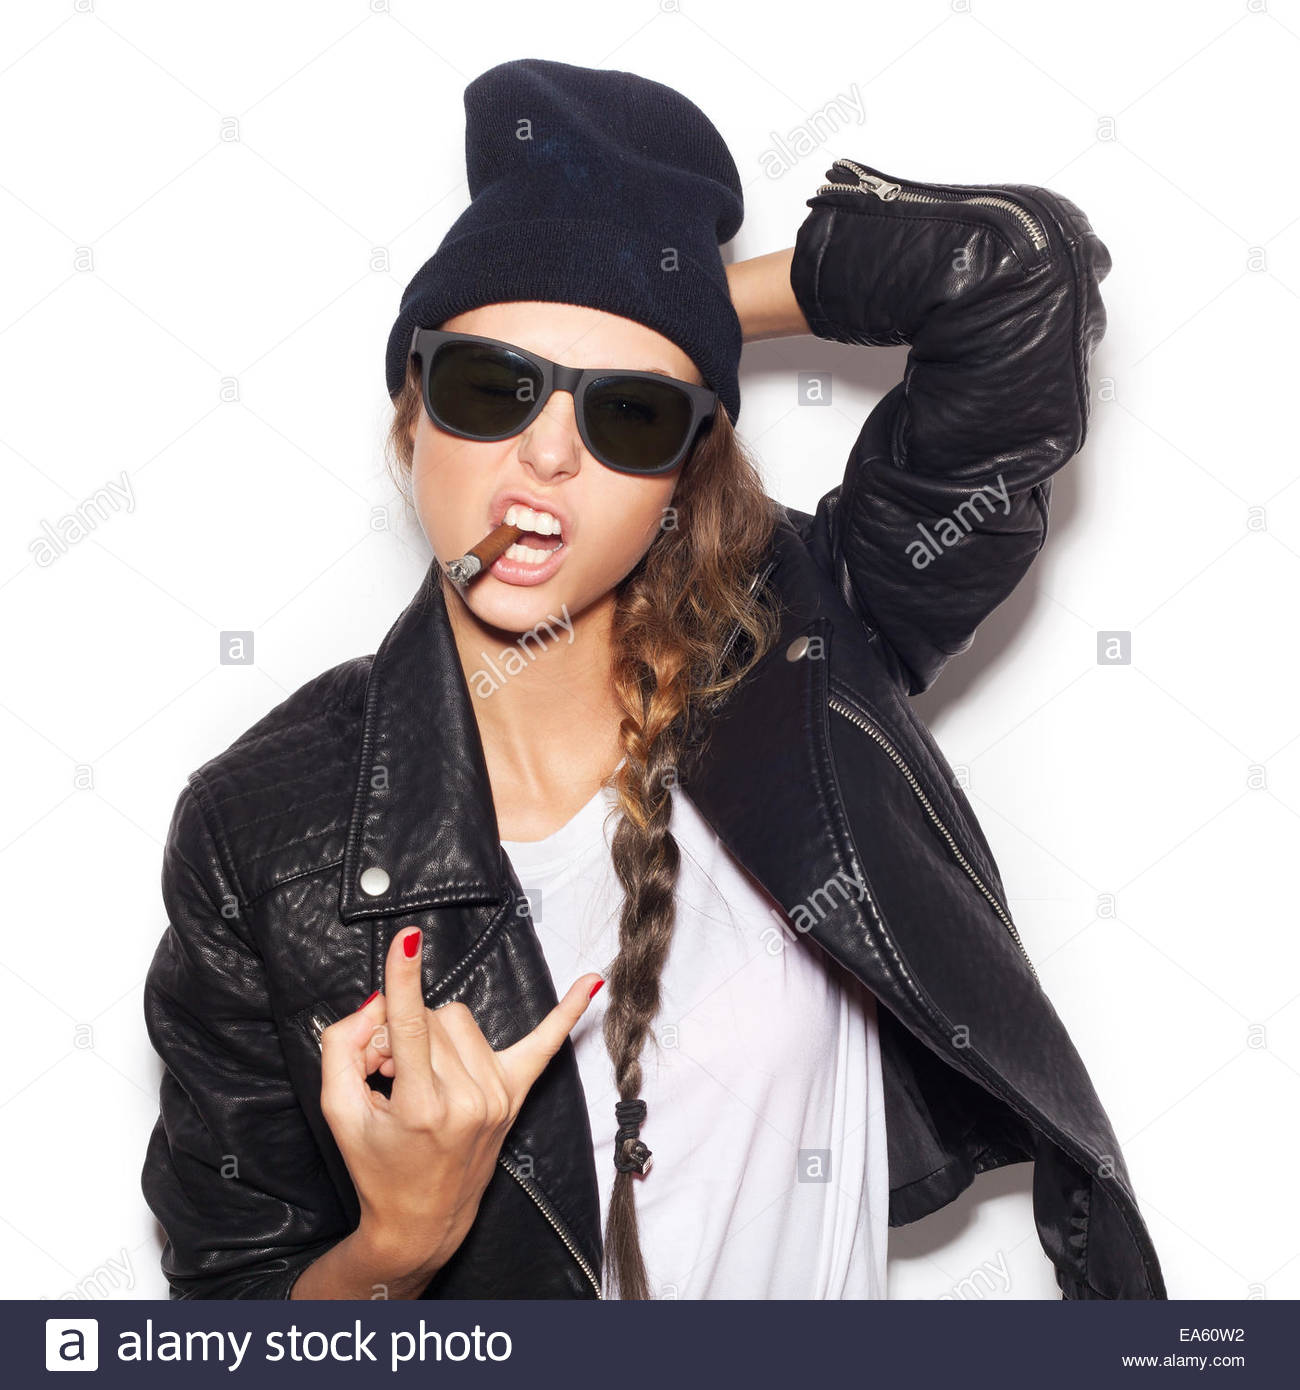 e9ab1467d86 Hipster girl in sunglasses and black beanie smoking and giving the Rock and  Roll sign. White background